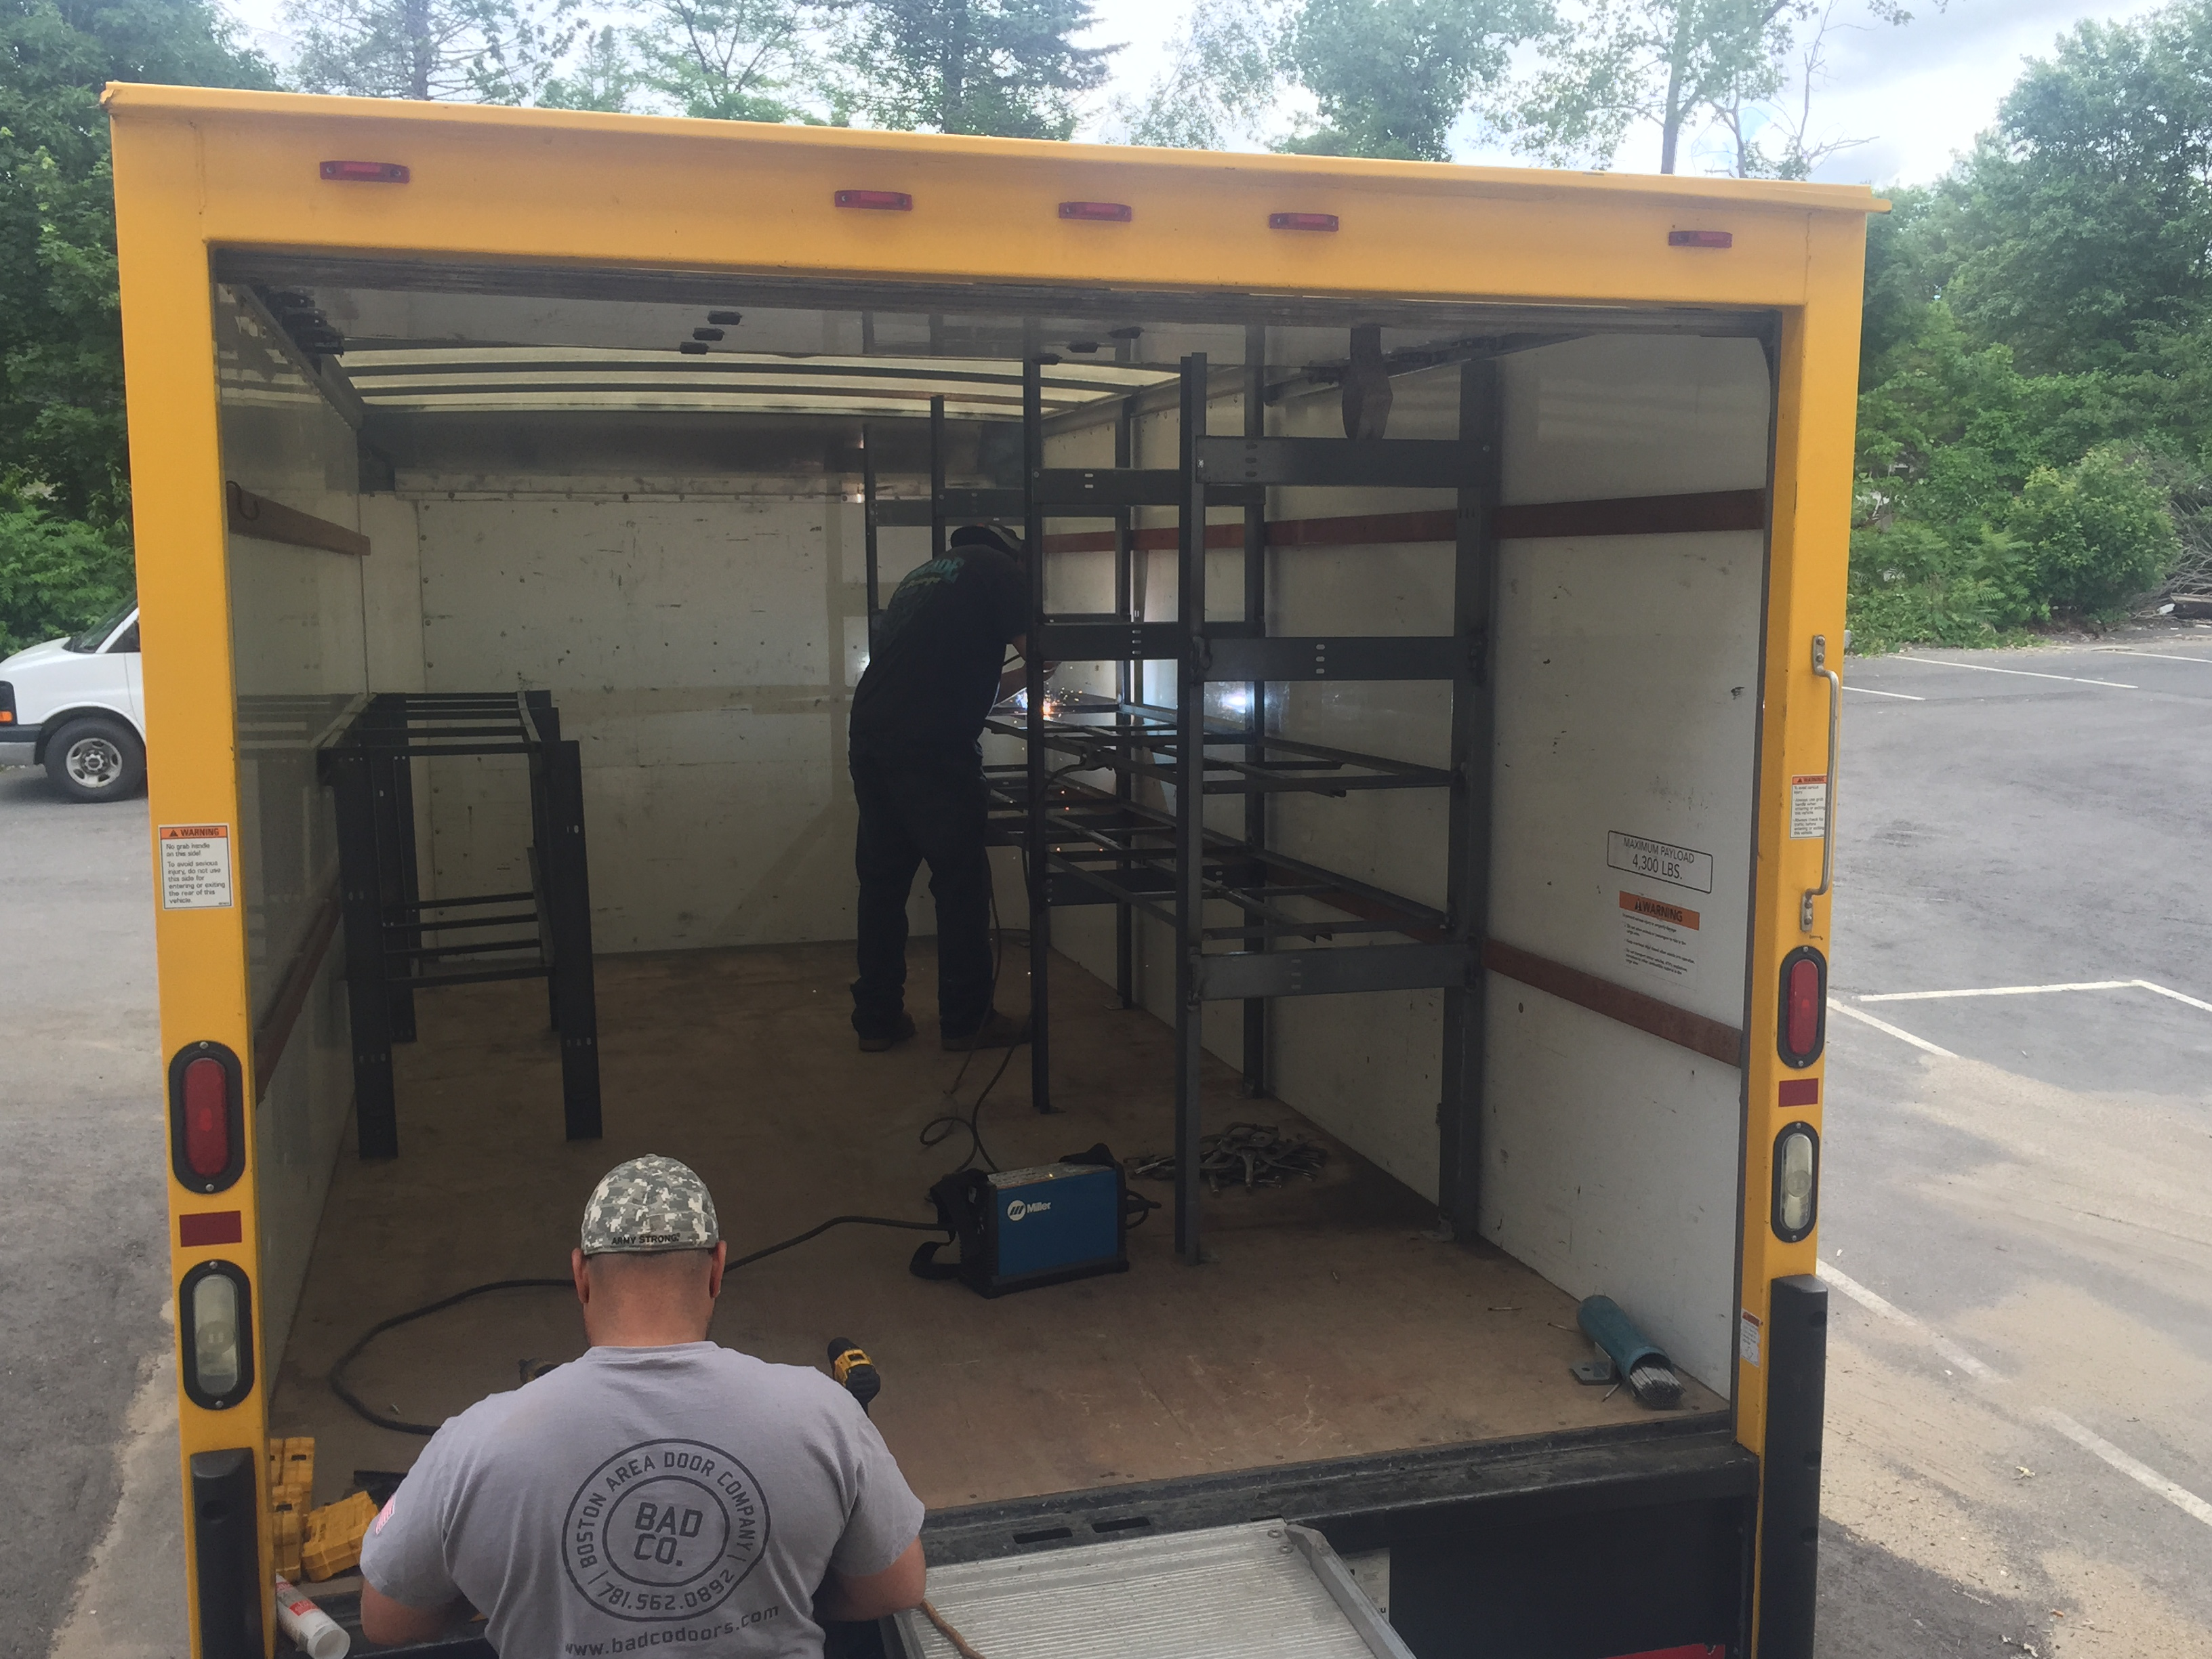 Anyone ever buy a used penske box truck page 2 - Commercial van interiors locations ...